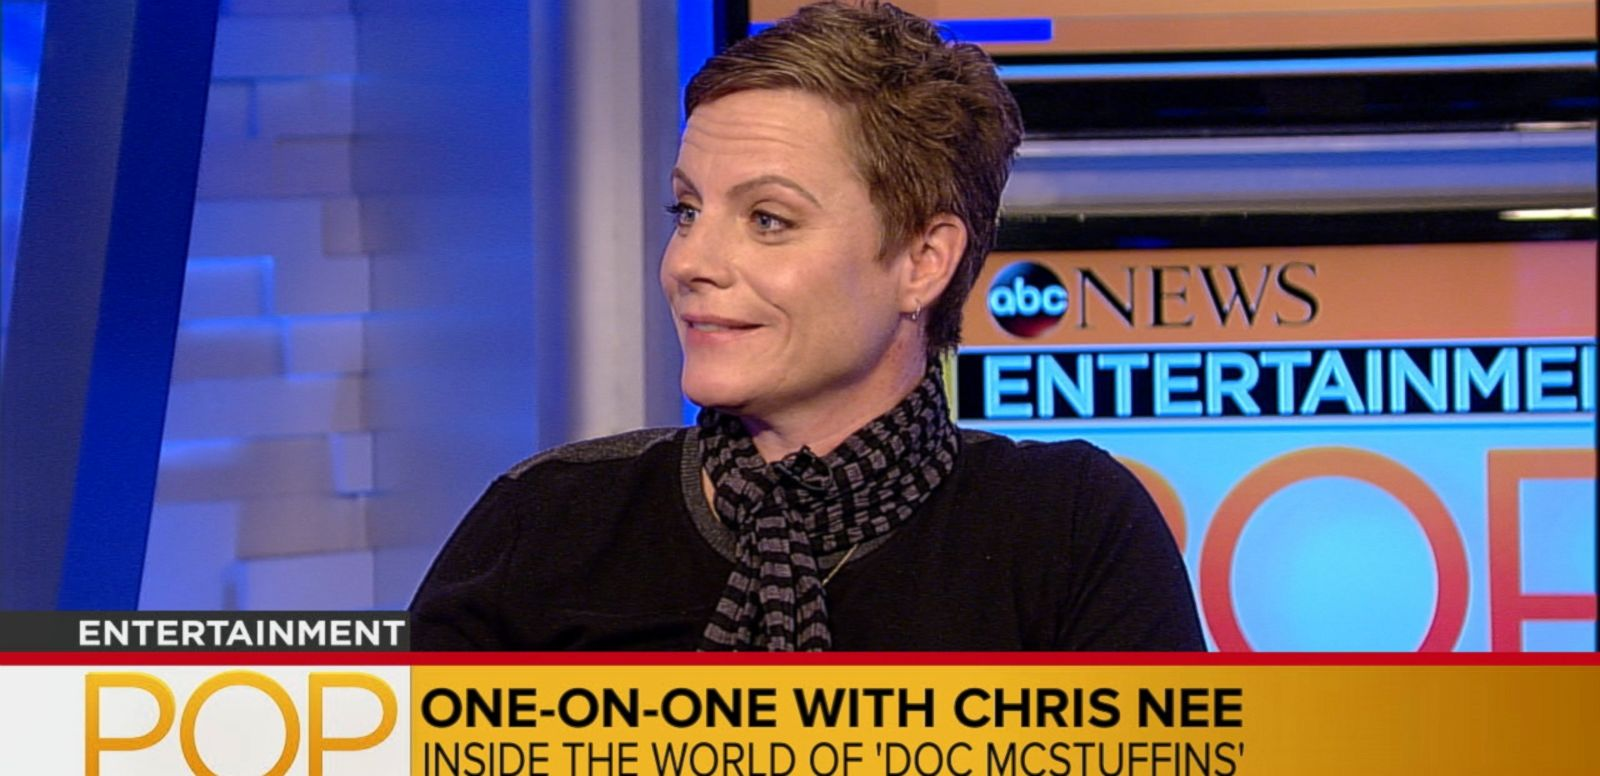 VIDEO: One-on-One with Chris Nee